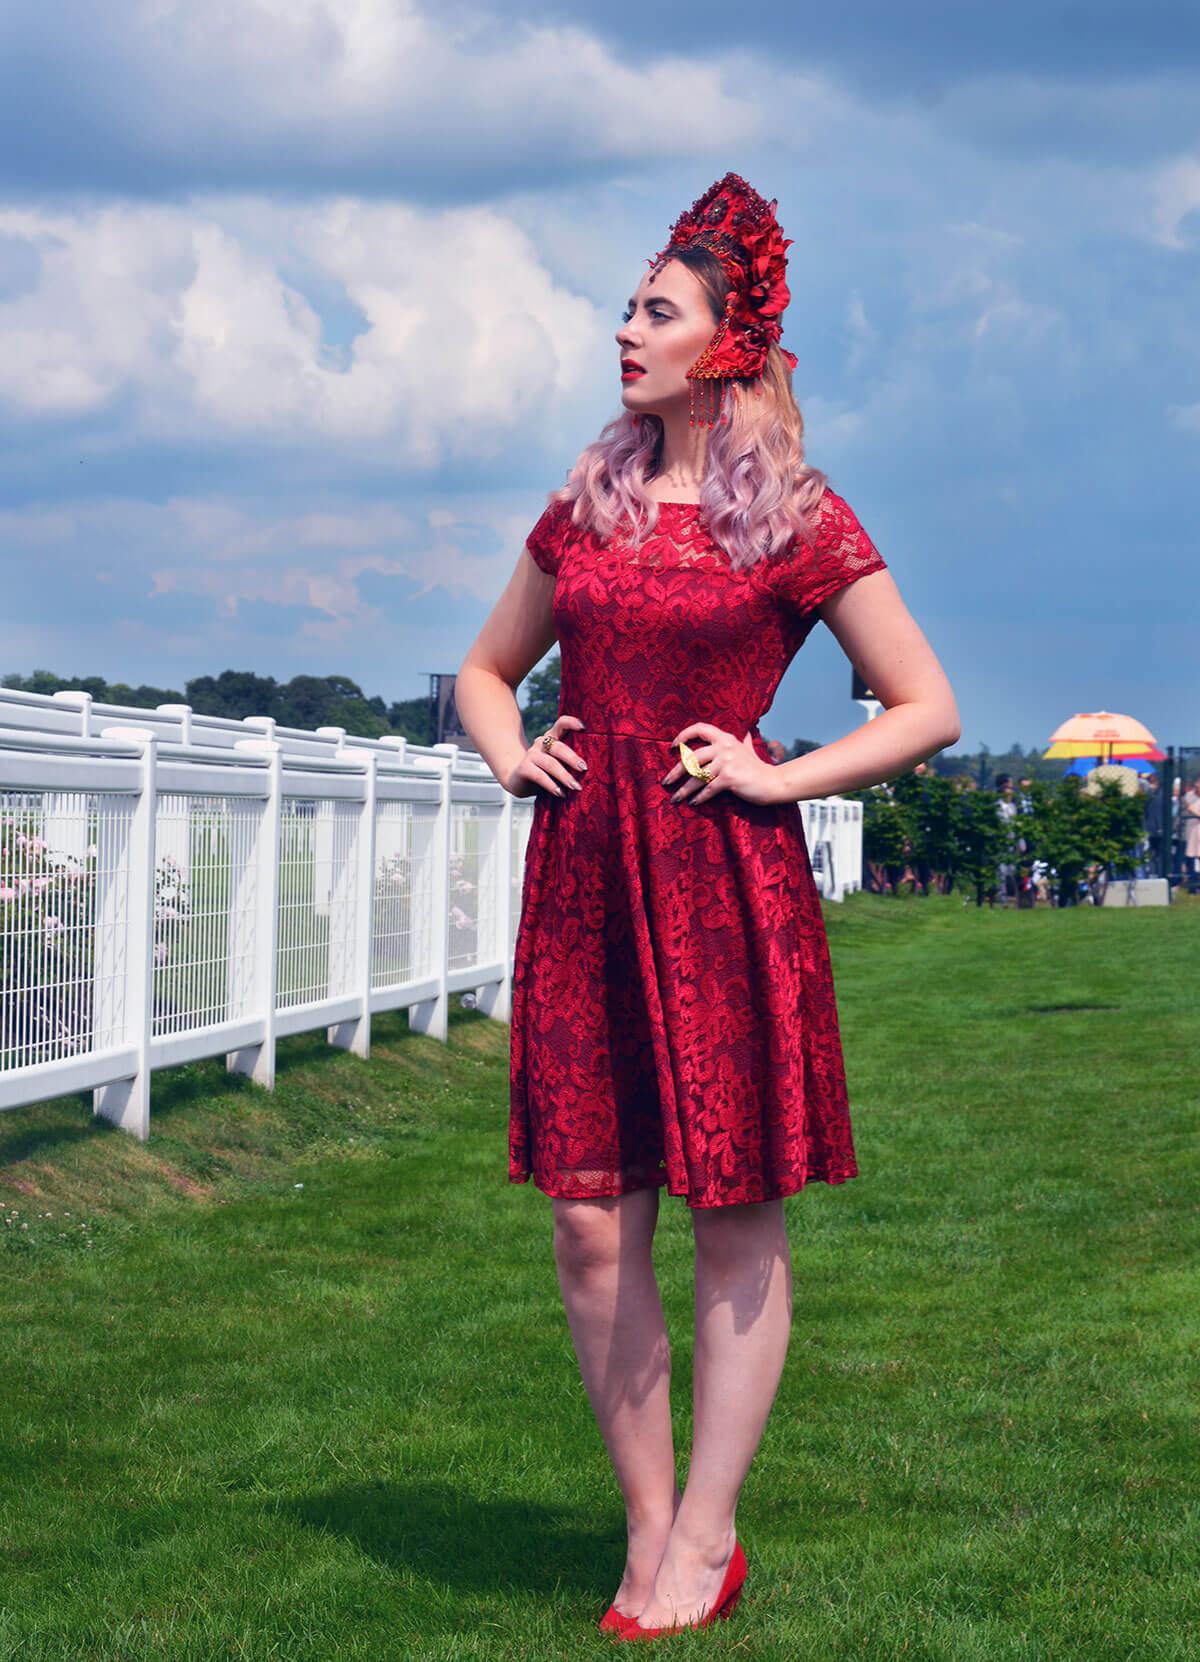 Edita at Royal Ascot in Hot Squash and Creations by Liv Free 4